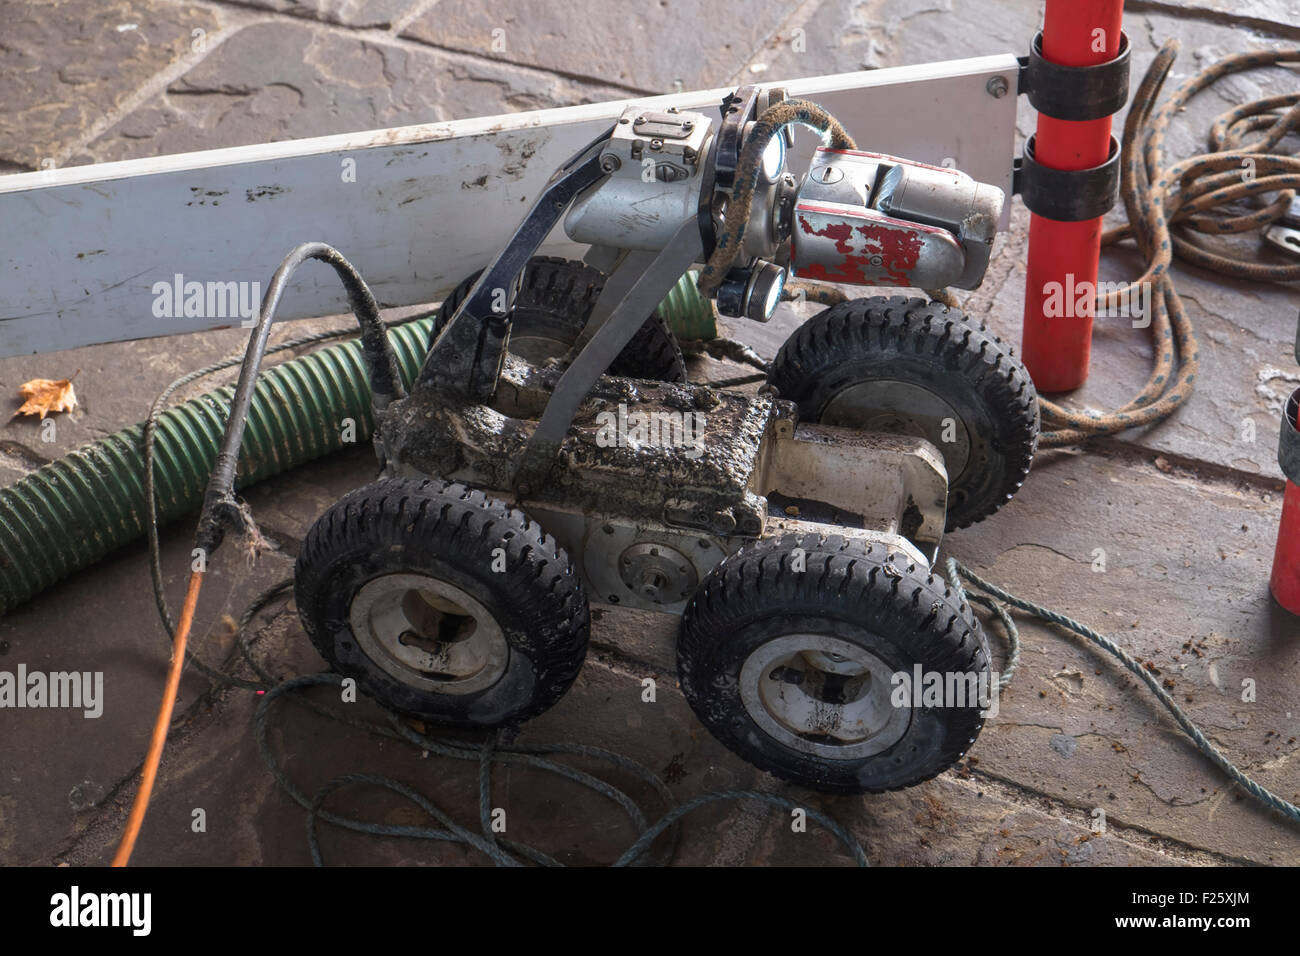 Sewer Pipe Inspection Robot Seen at Bristol Harbour. - Stock Image